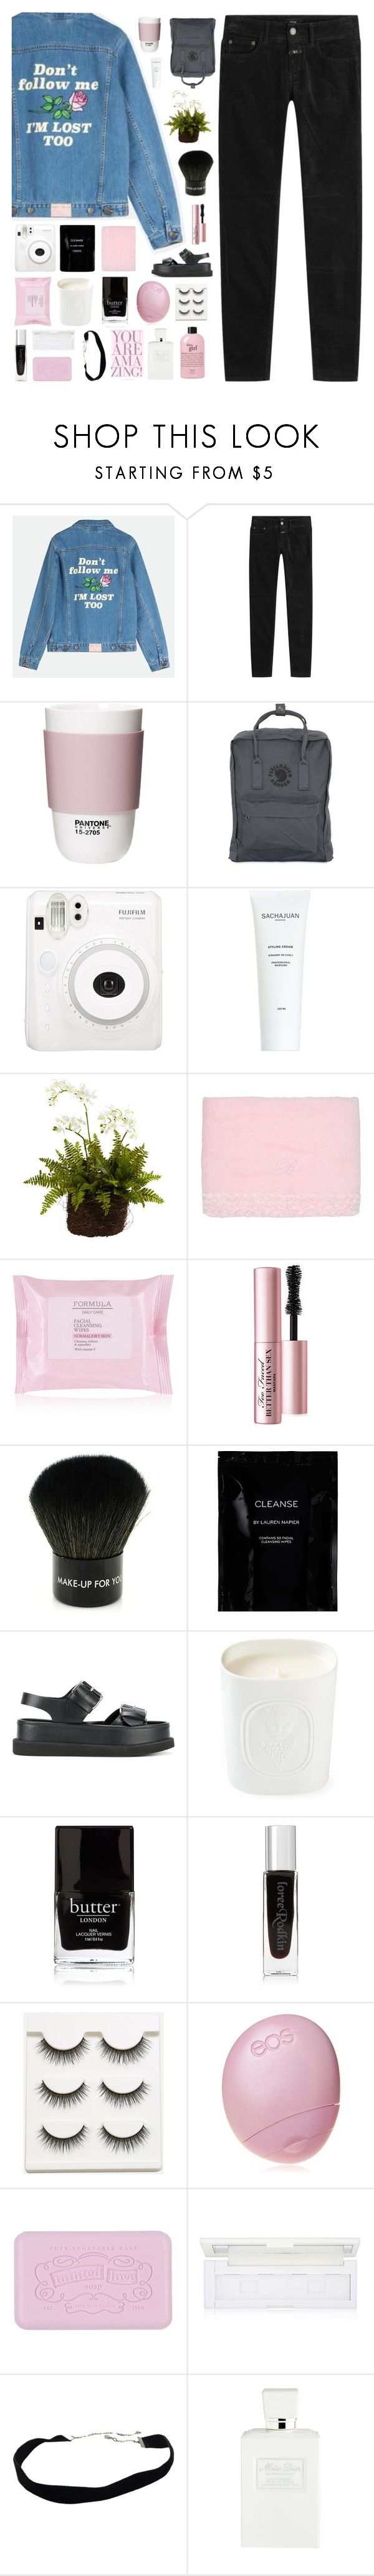 """""""STAND BY ME, WE'LL GET AWAY SOMEHOW"""" by everything-is-peachy ❤ liked on Polyvore featuring Closed, ROOM COPENHAGEN, Fjällräven, J.Crew, Nearly Natural, Blumarine, Too Faced Cosmetics, Cleanse by Lauren Napier, STELLA McCARTNEY and Diptyque"""